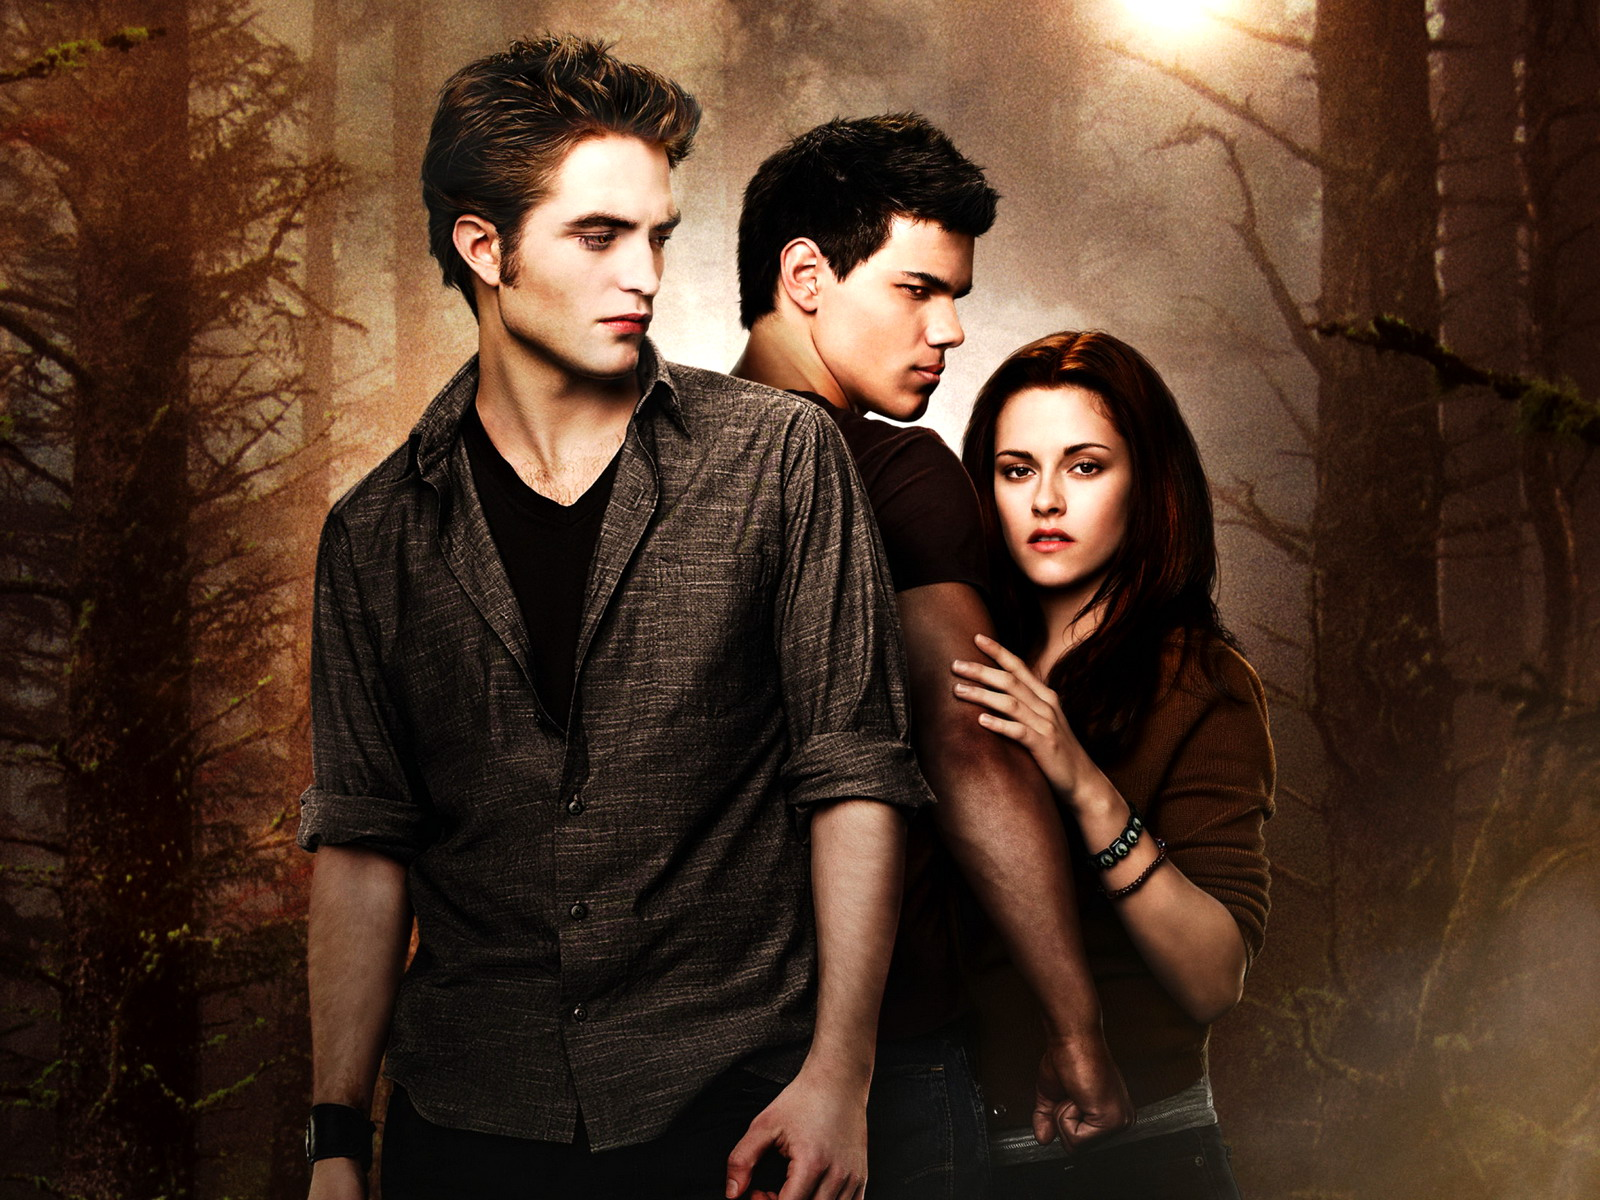 Twilight Wallpapers HD HQ Widescreen